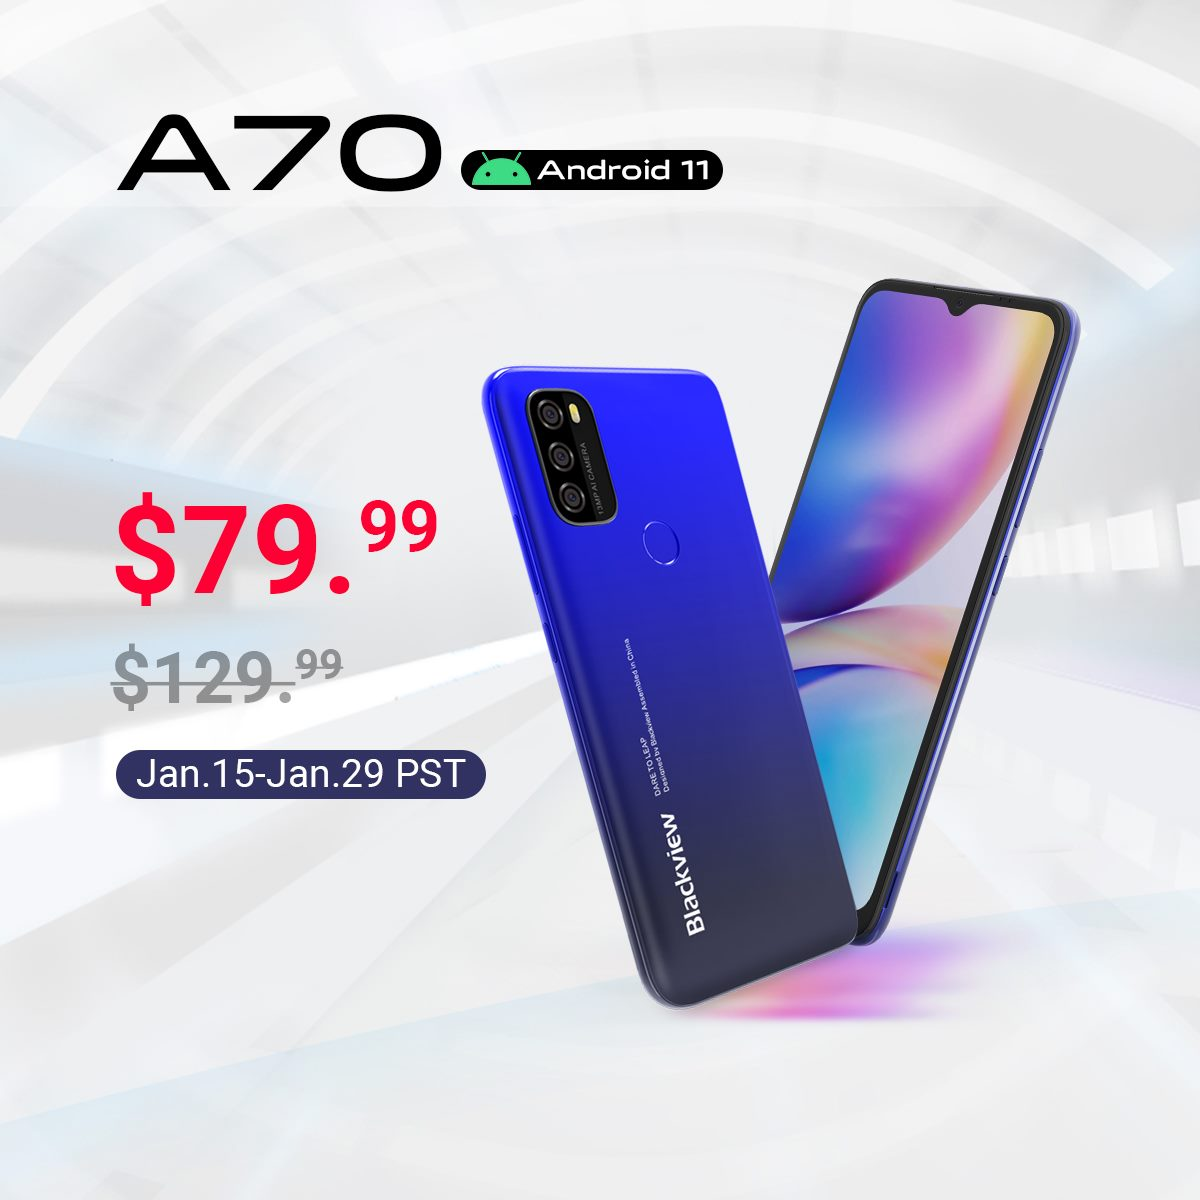 Budget Big Battery King #A70 open sale is live! 🥳